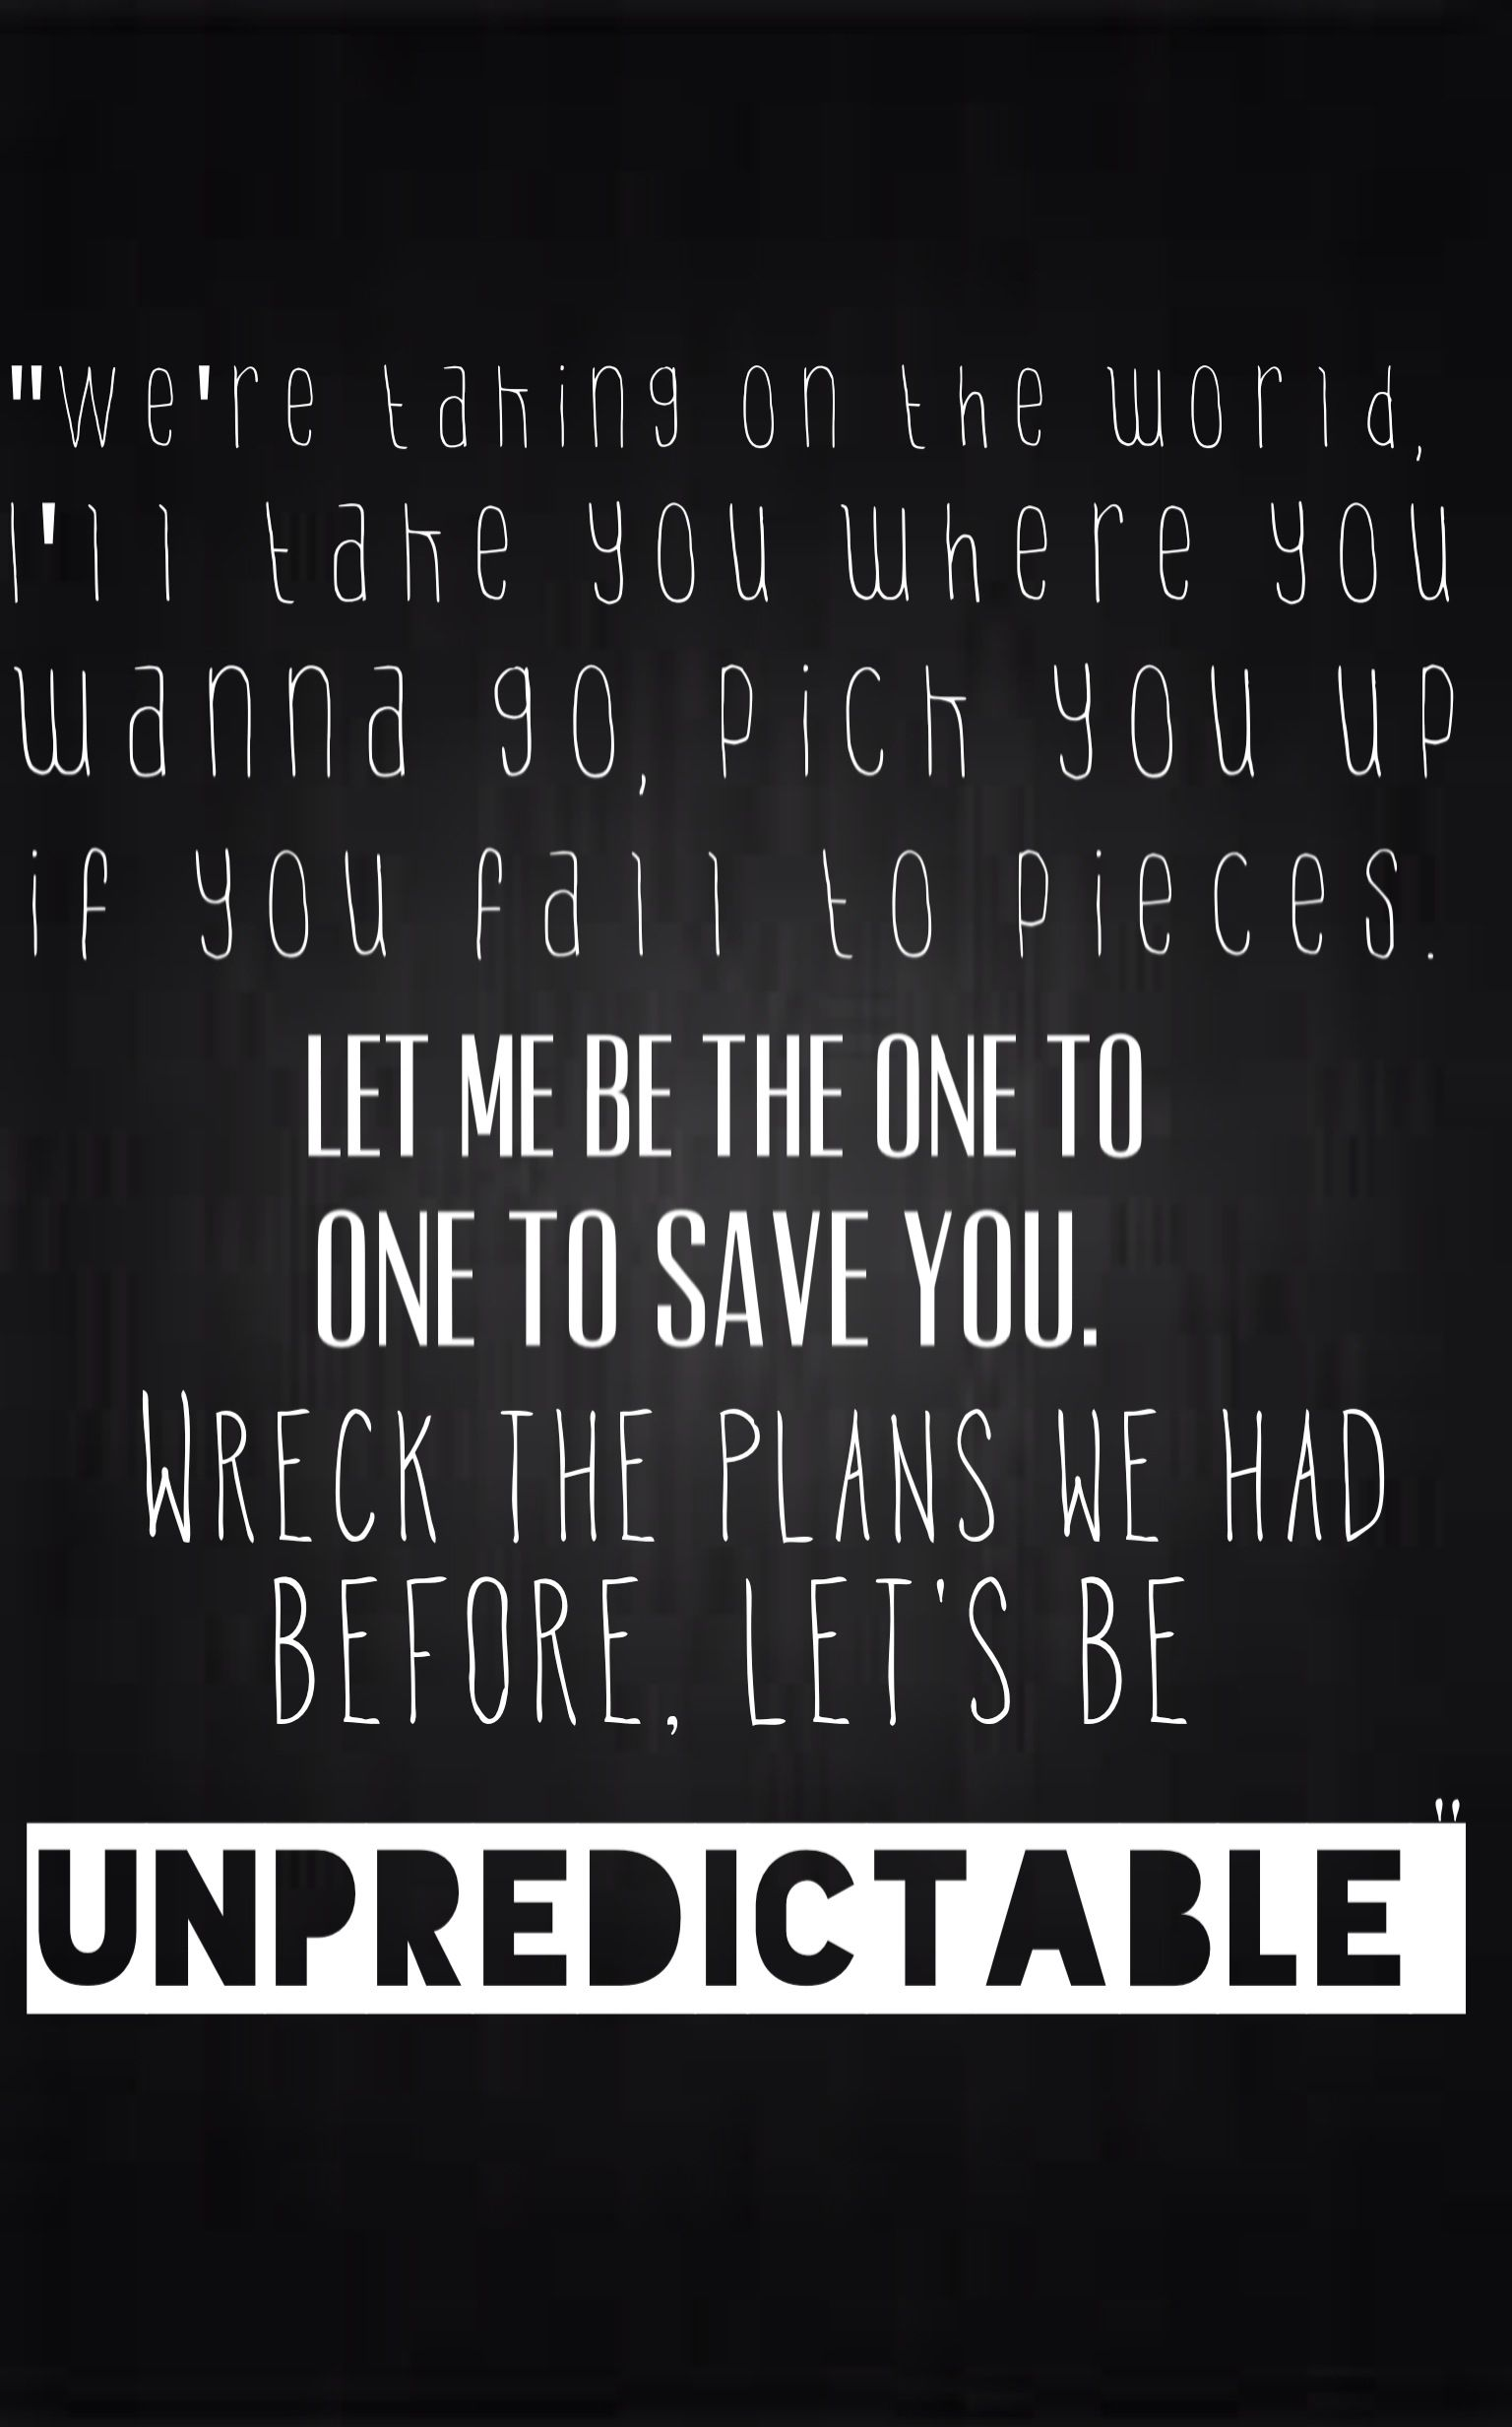 Silly Love Songs With Lyrics With Images 5sos Lyrics 5sos